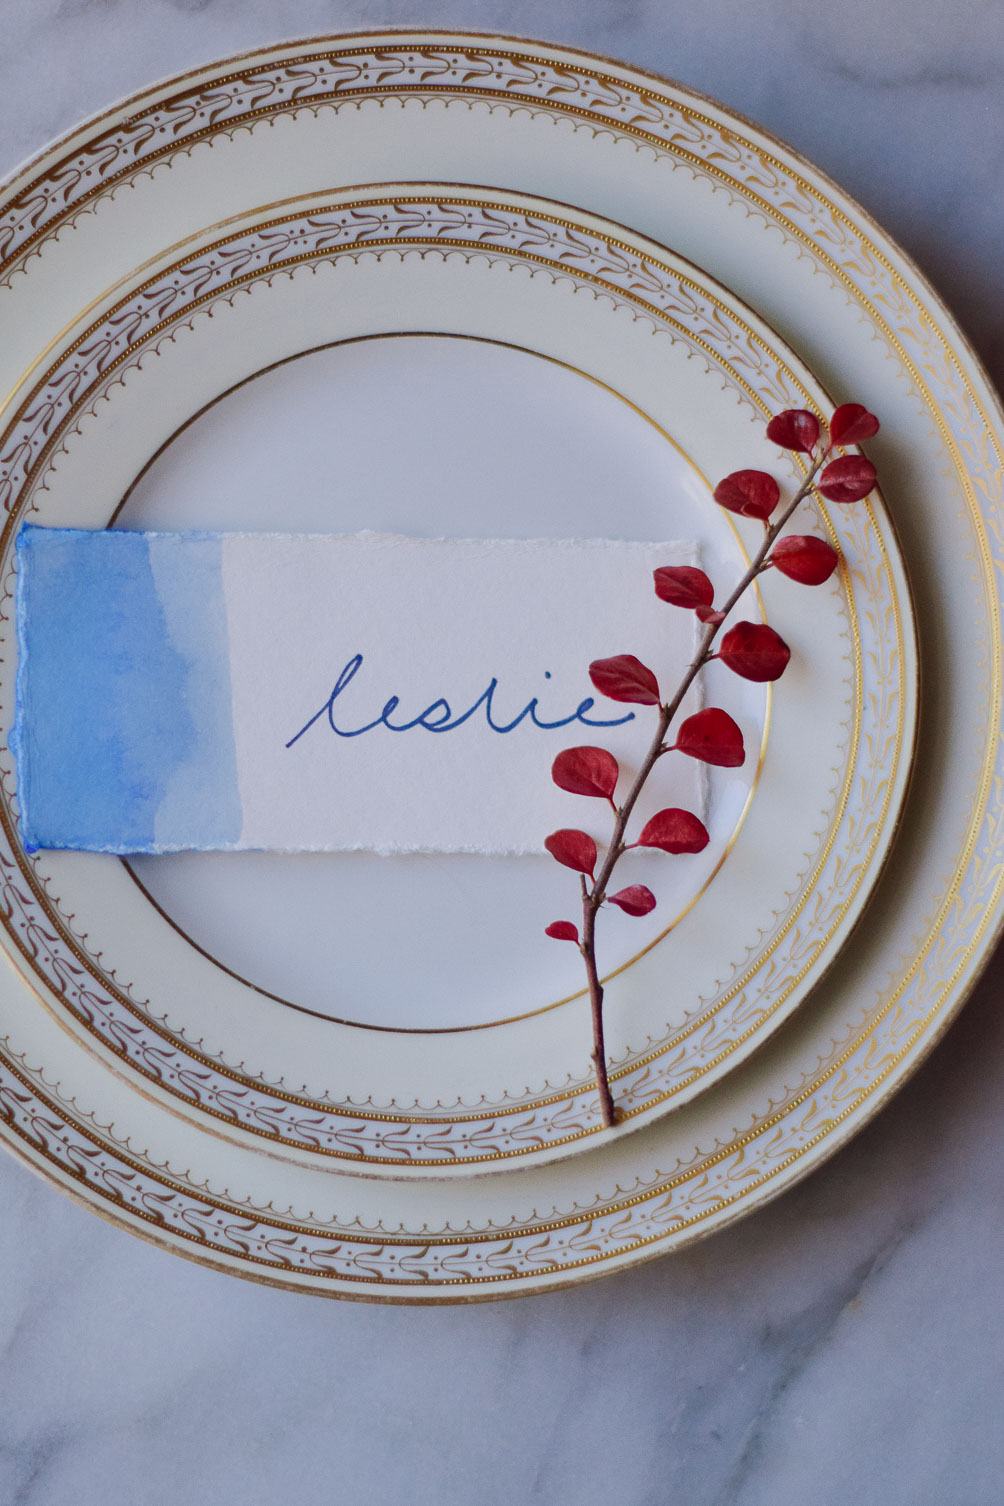 DIY watercolor placecards with an ombre effect for the Thanksgiving tablescape decor